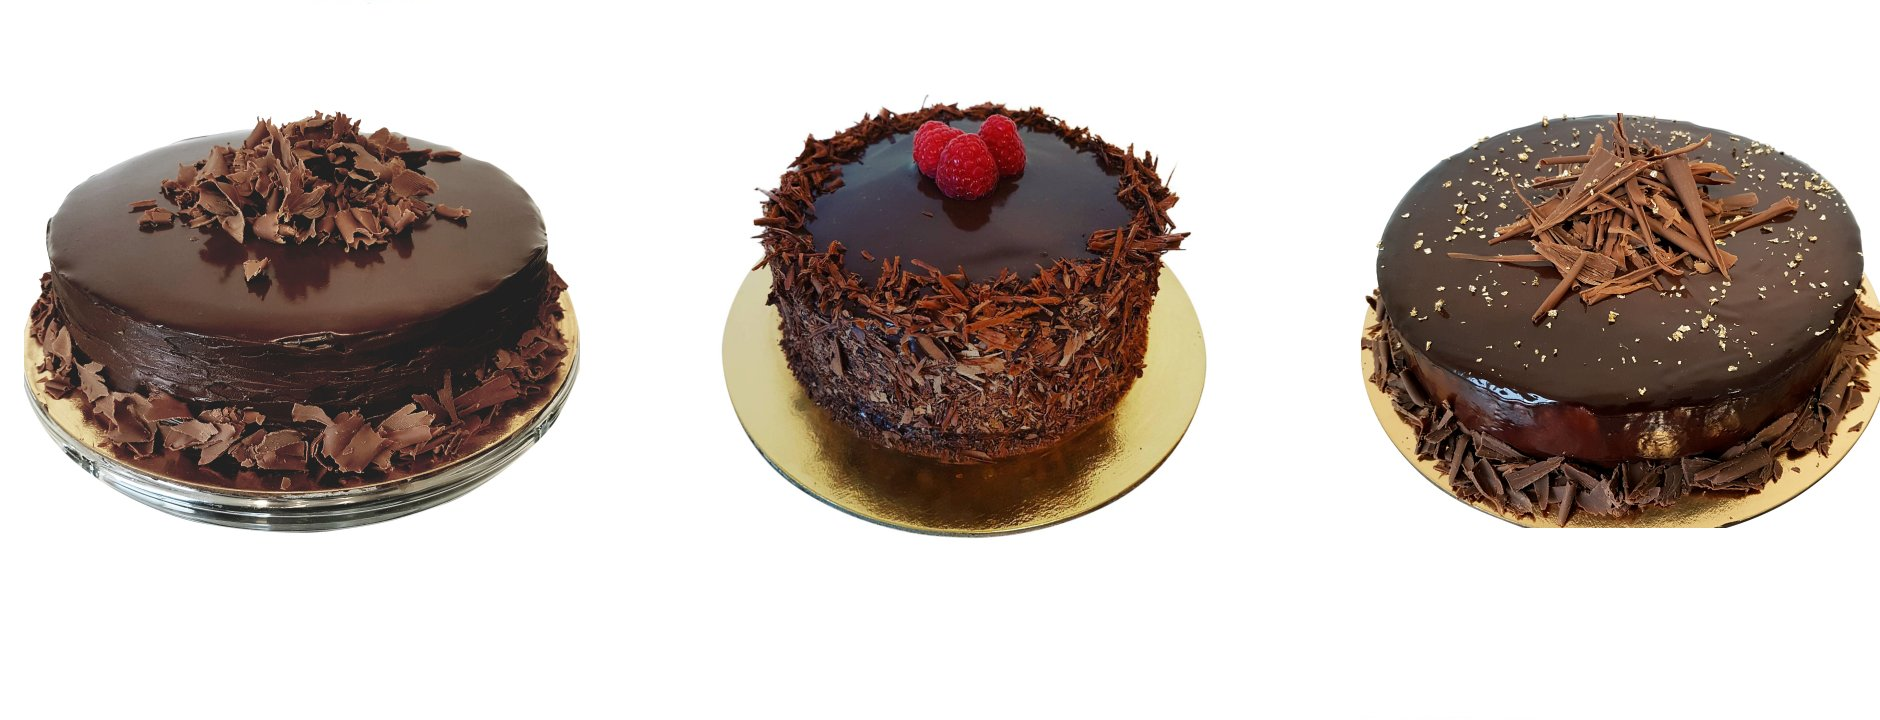 Chocolate Lovers Cakes